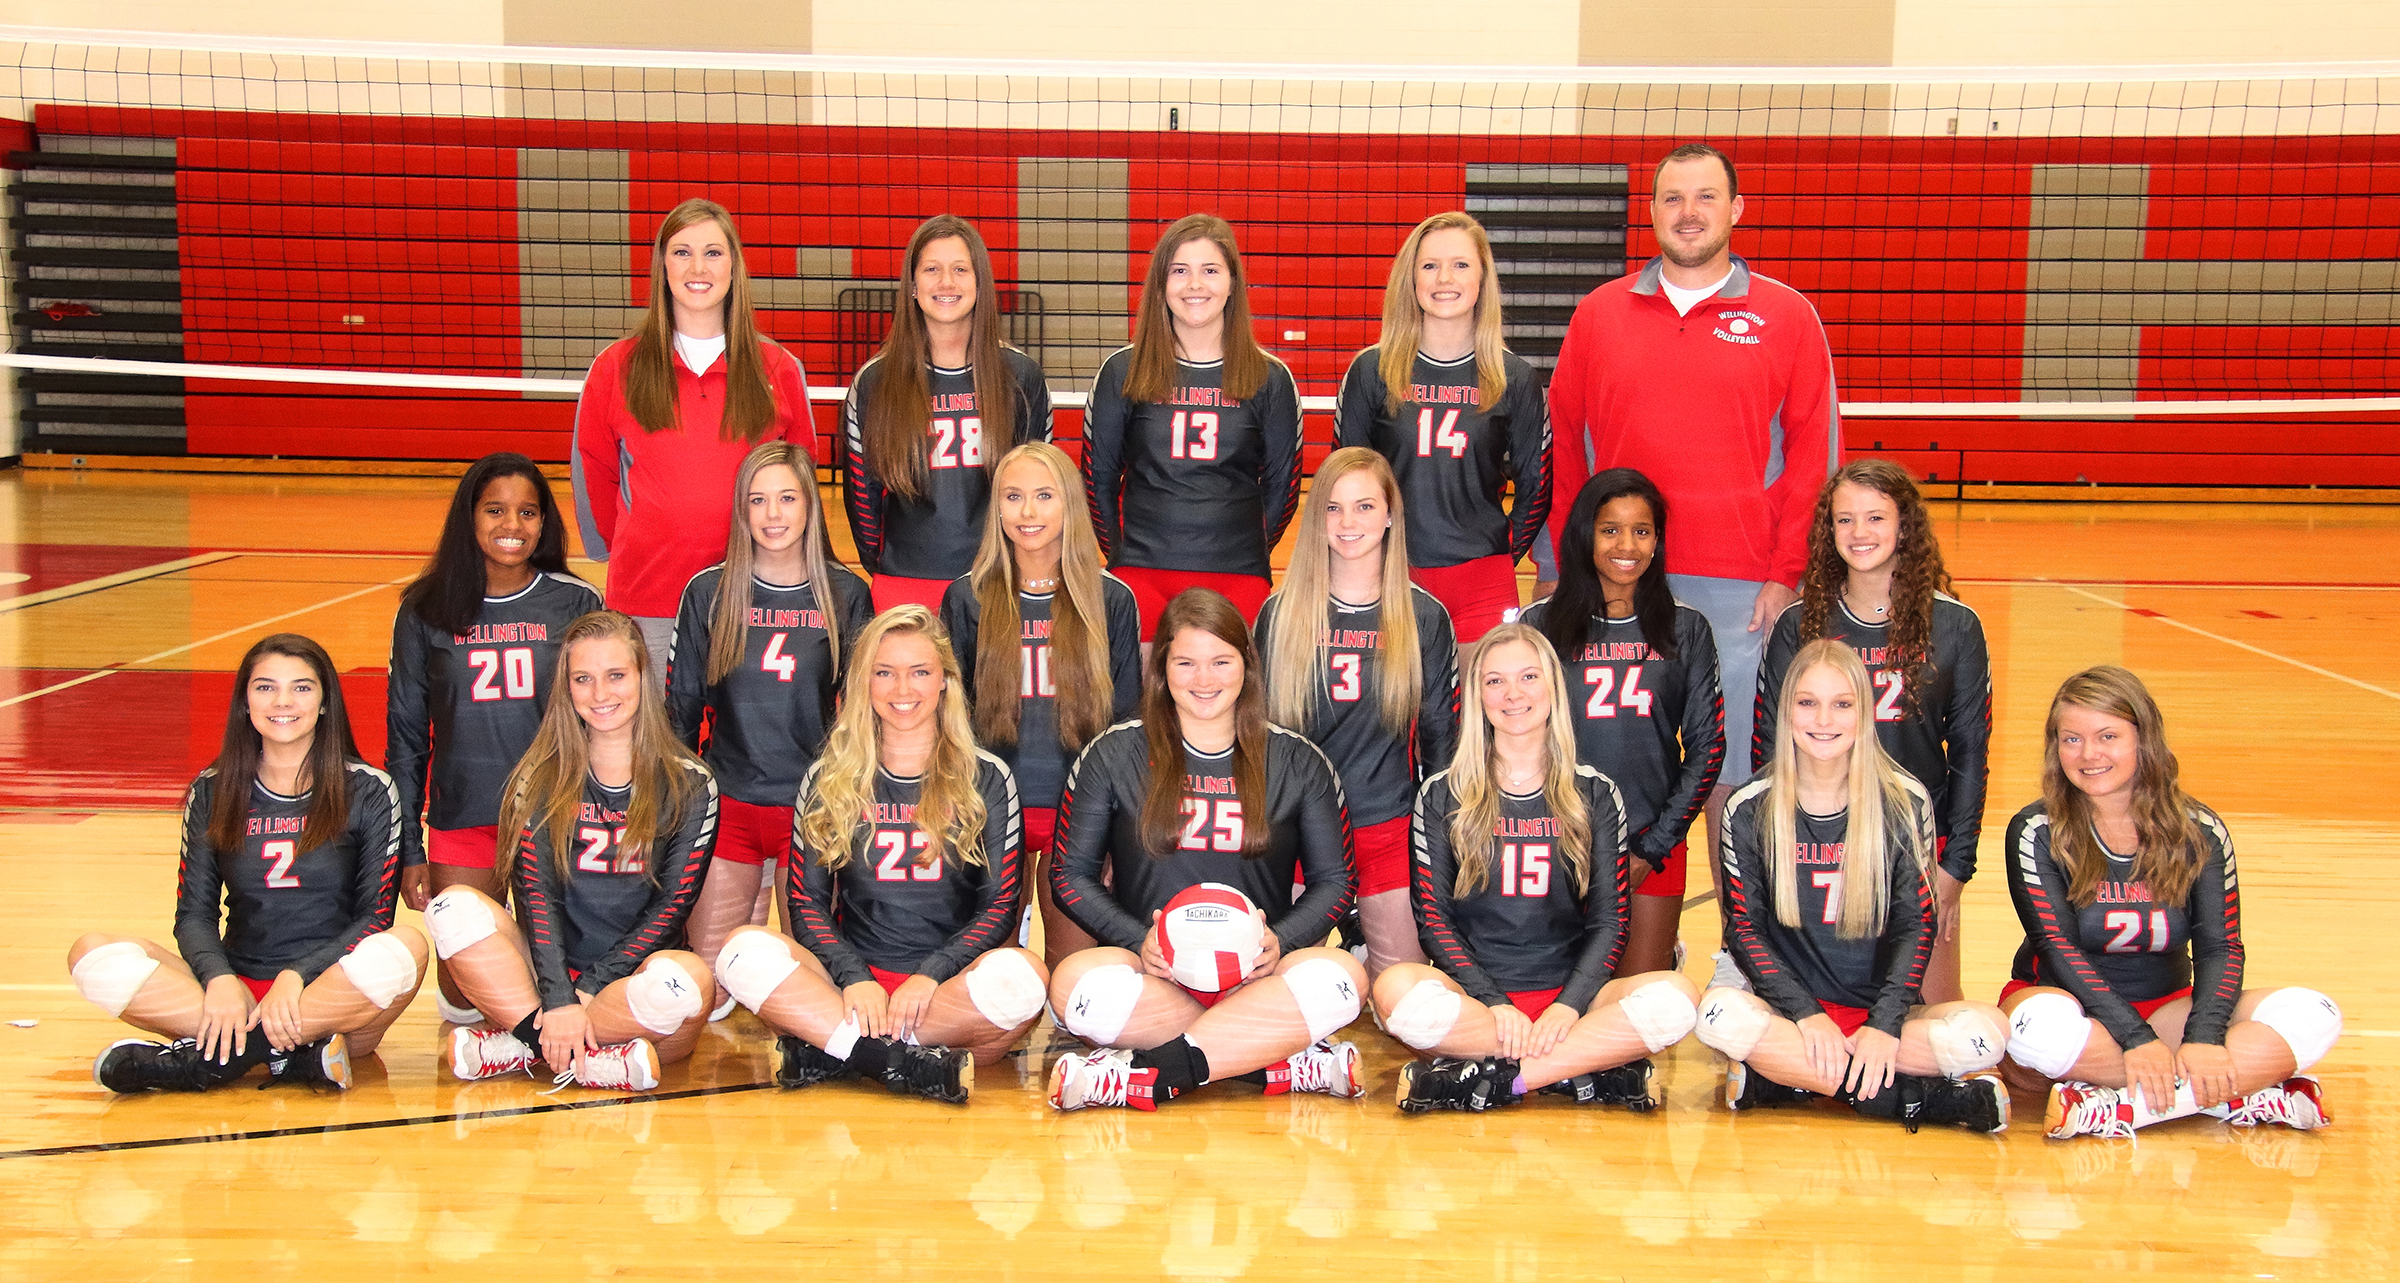 WHS Volleyball 2018 Team